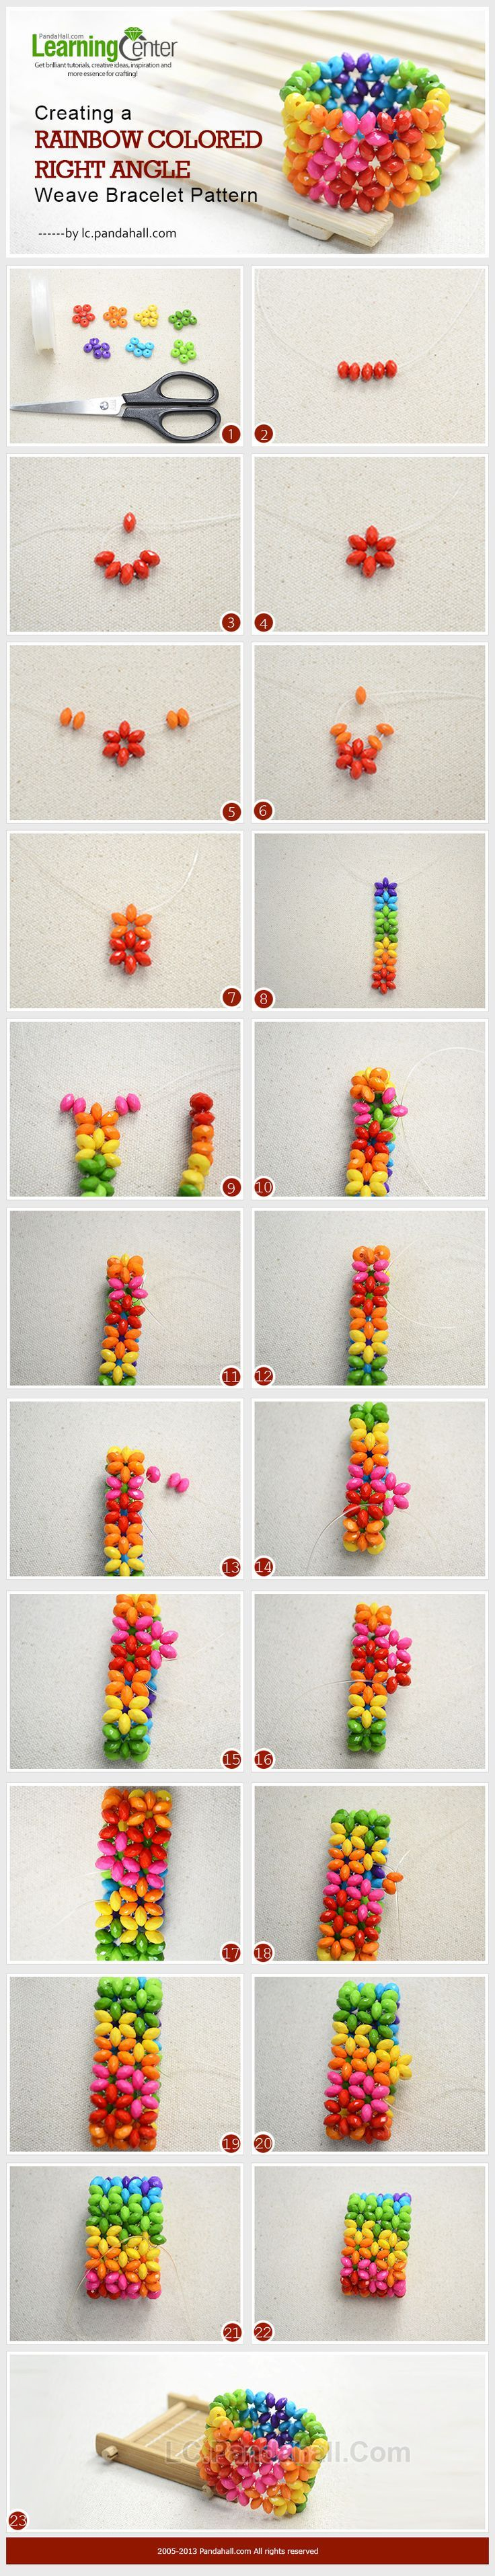 Rainbow Colored Right Angle Weave Bracelet Pattern #Tutorial #diy